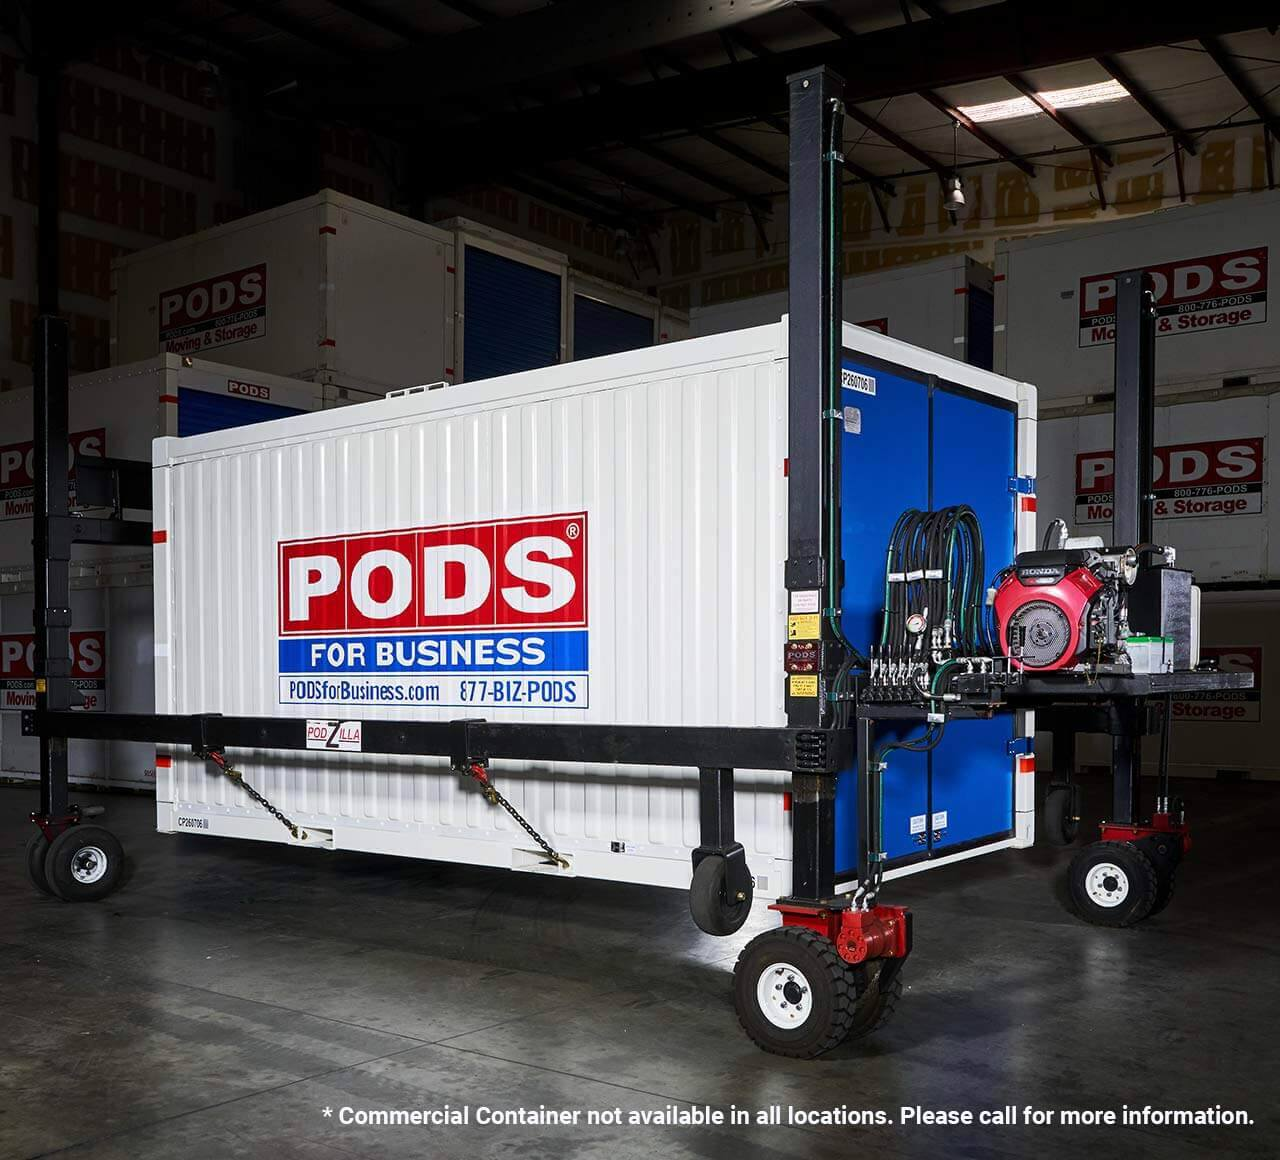 PODS for Business steel commercial container in storage facility